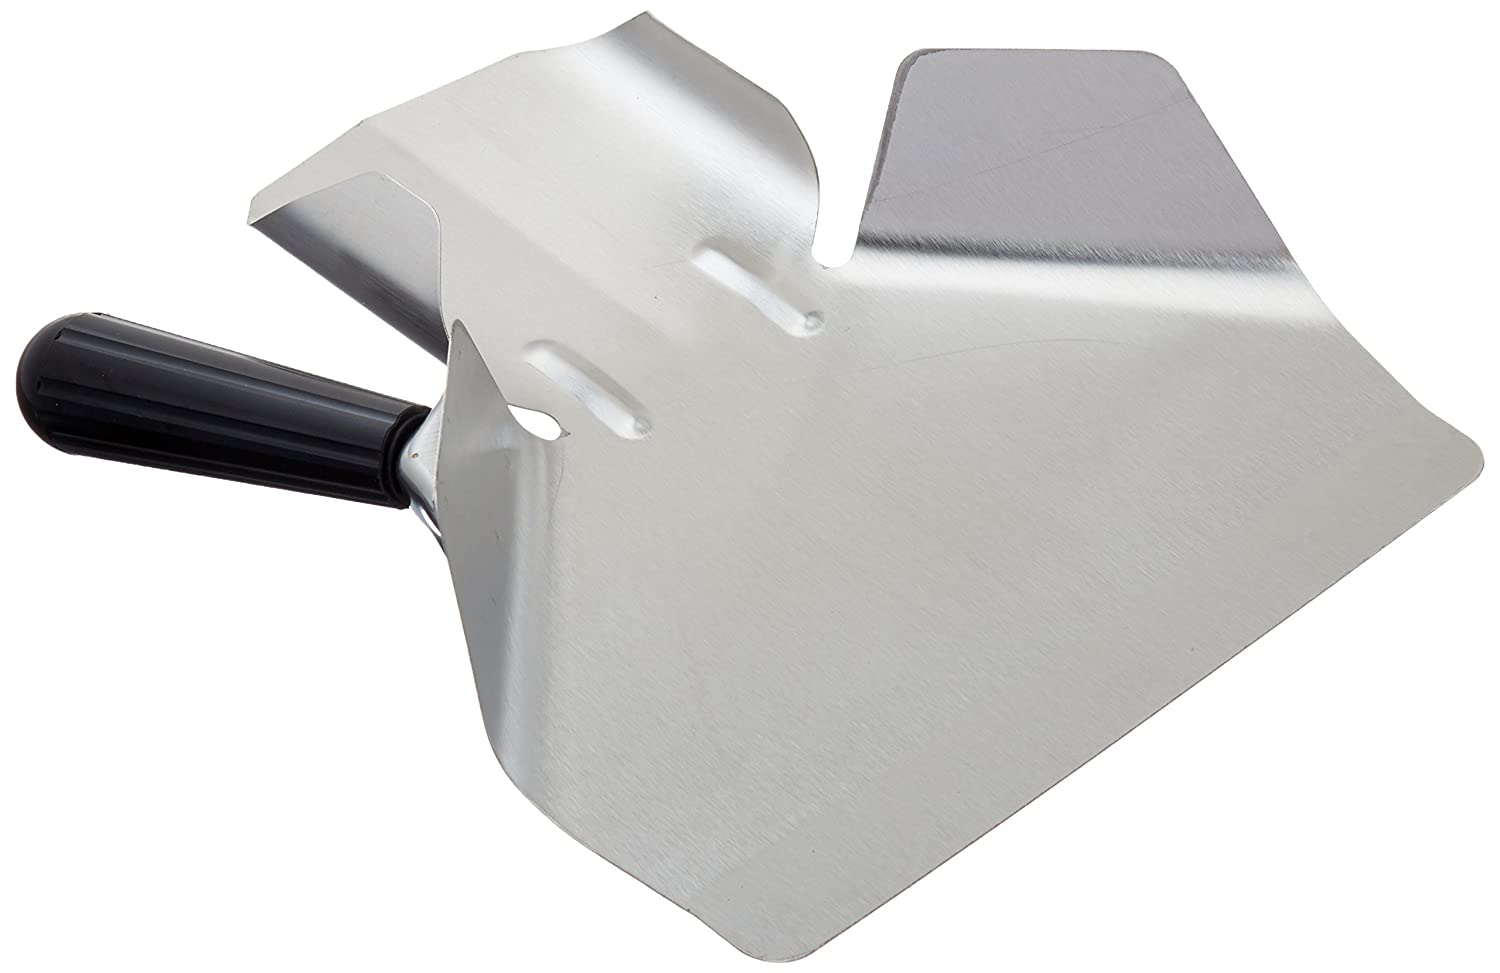 B001VZ5DIW Winco French Fryer Bagger with Right Handle 71FwOBDj2HL